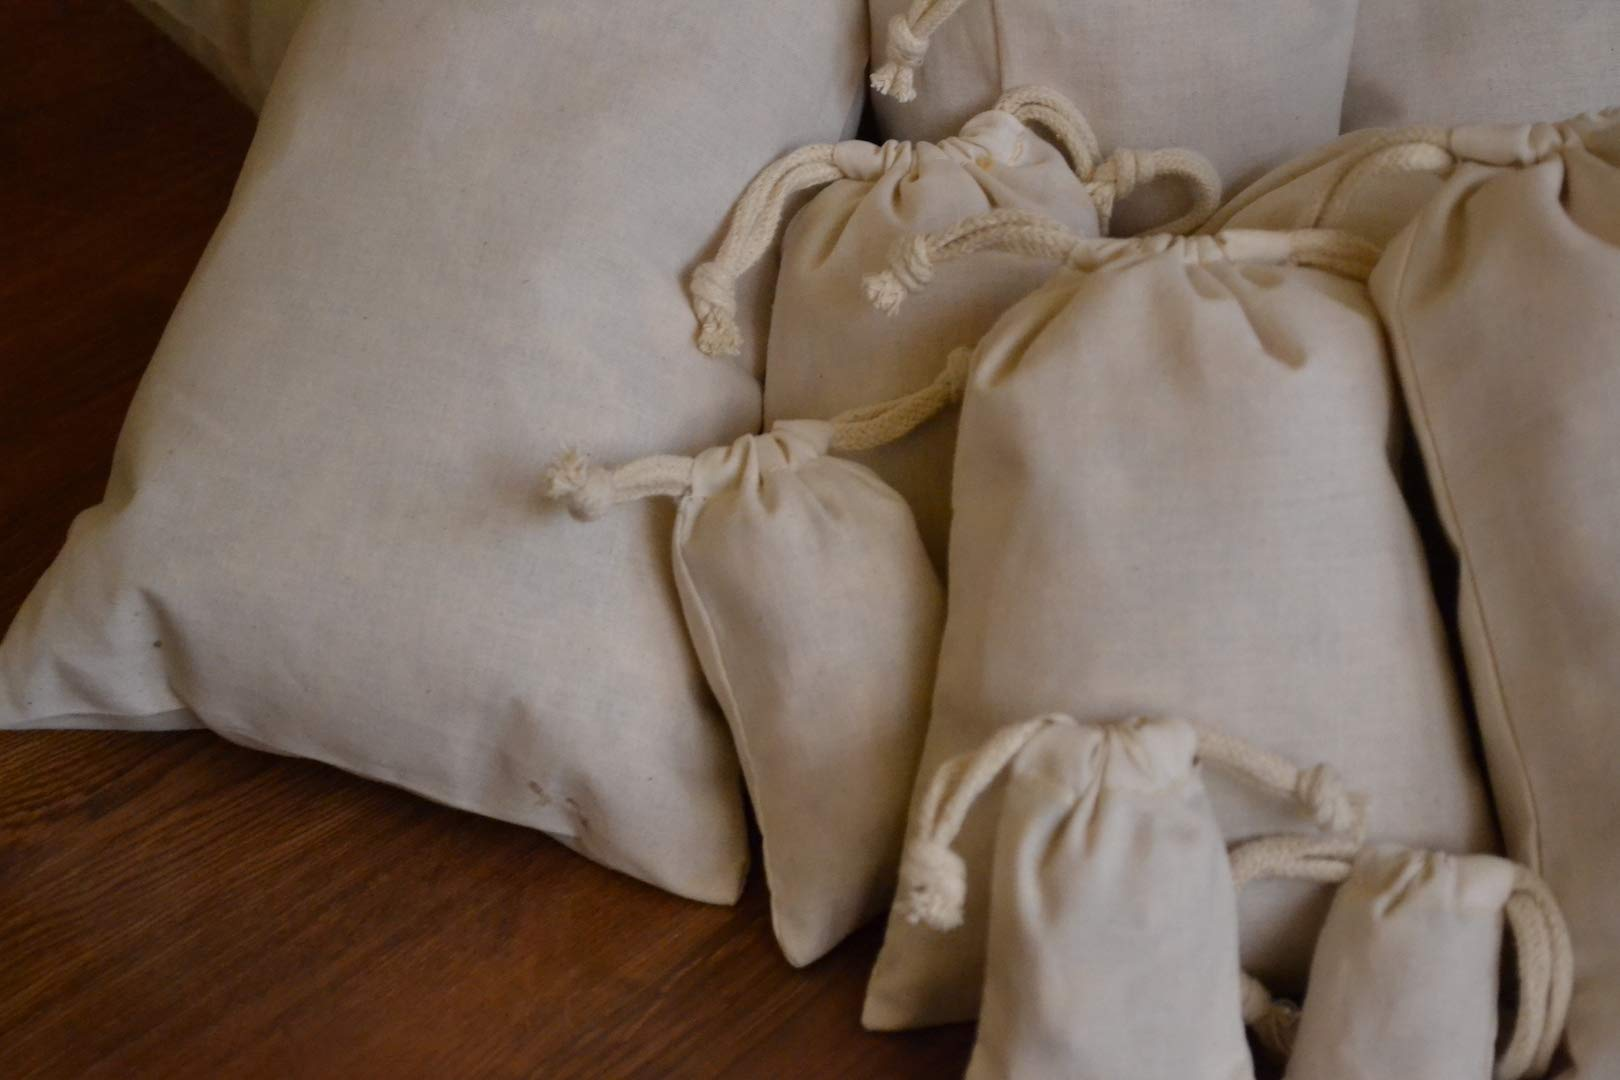 Biglotbags 100 Pieces of 12 x 16 Inches Cotton Muslin Bags, 100% Organic Cotton, Double Drawstring Style, Premium Quality by BigLotBags (Image #7)